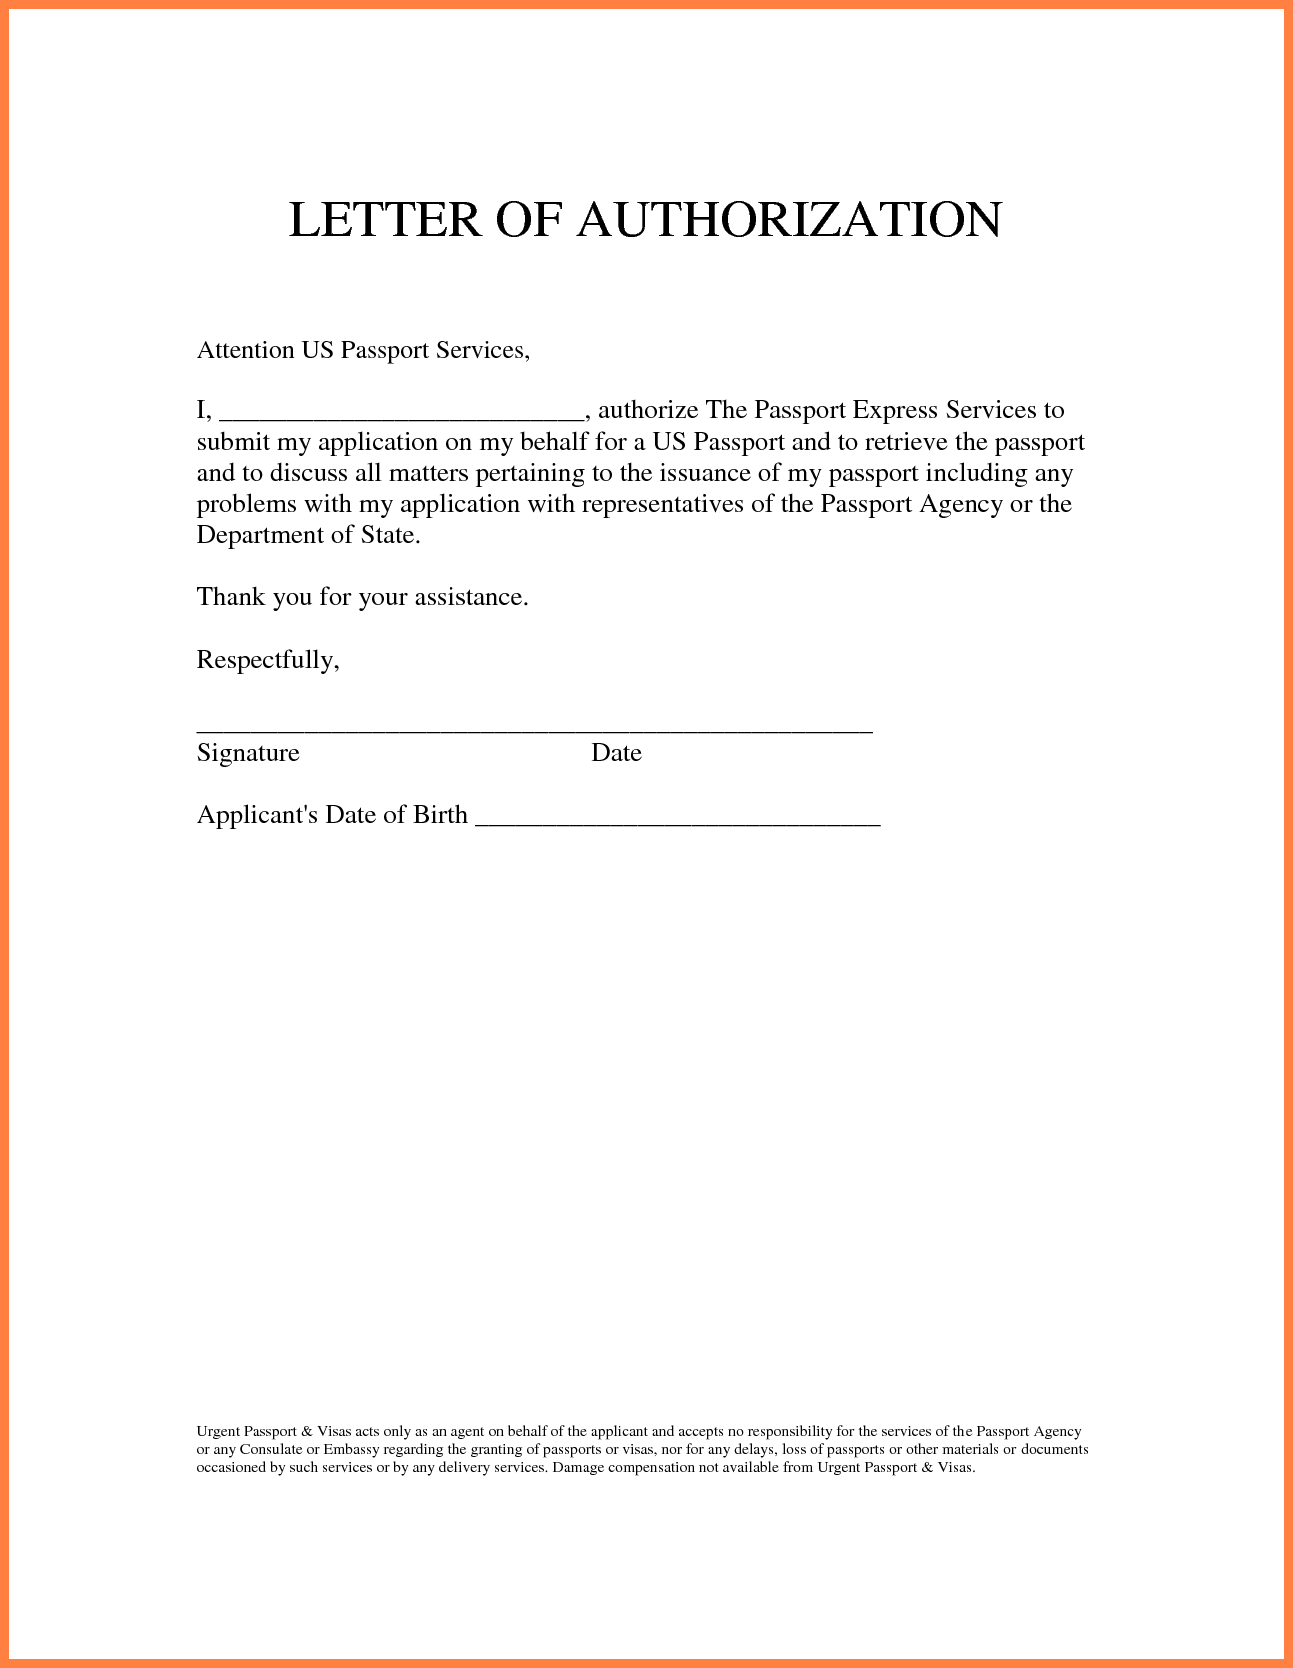 Sample Letter Of Authorization Form | Sample Authorization Letter Granting Permissionthorization For